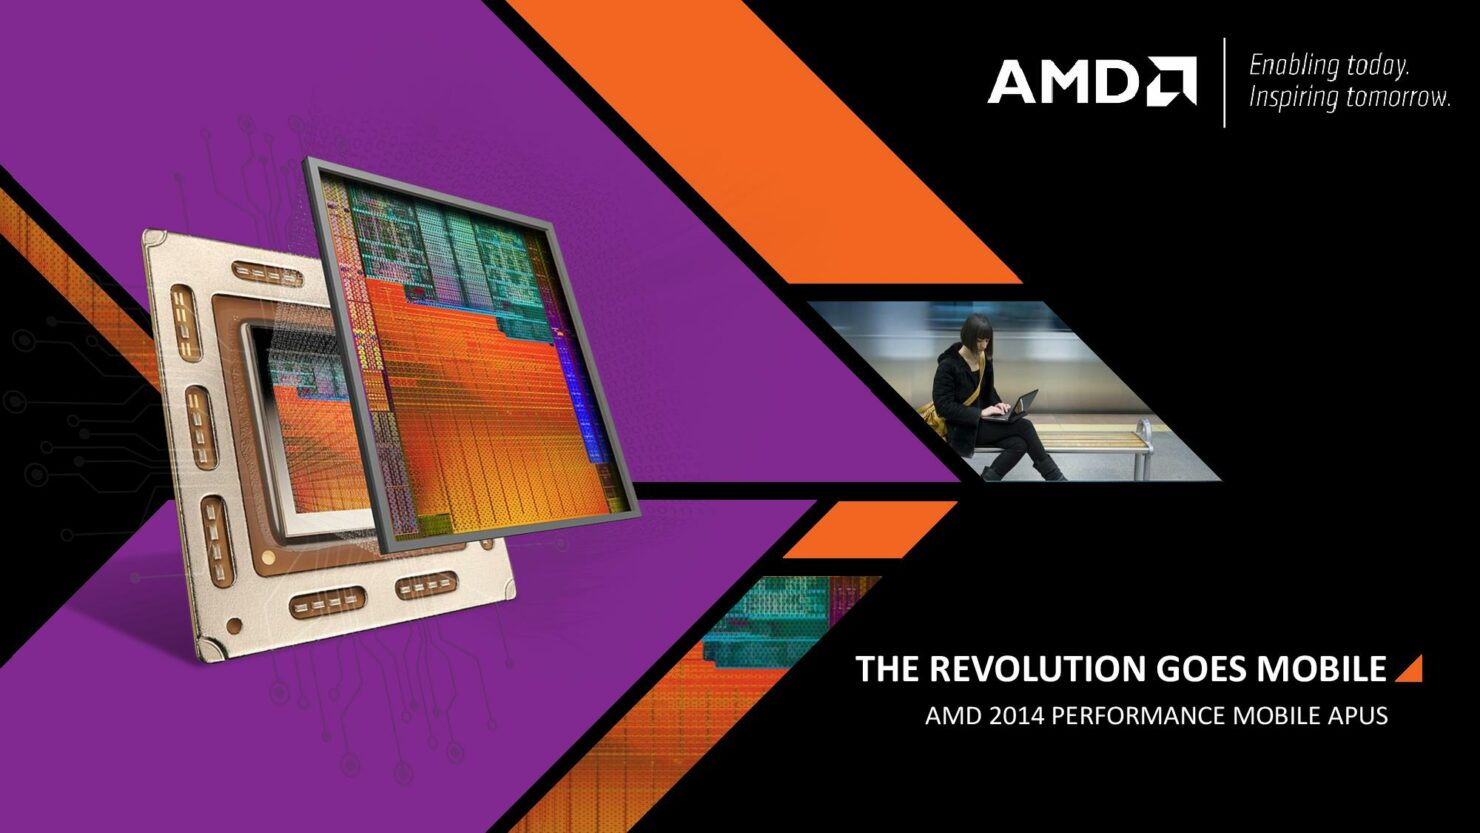 amd2014performancemobileapus-140528183404-phpapp02-page-001